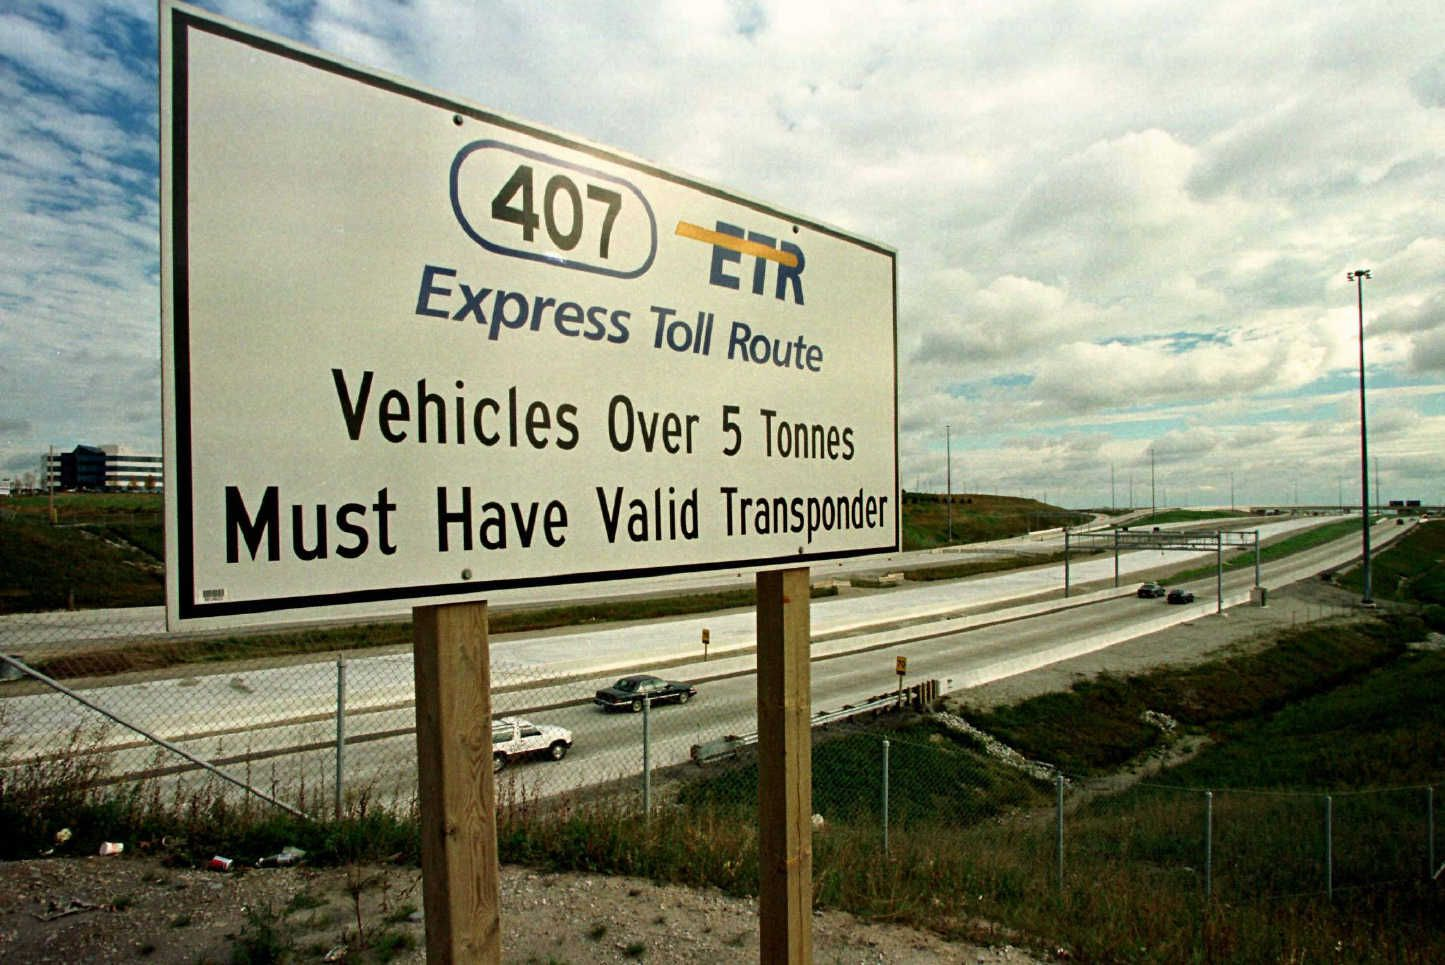 SNC-Lavalin to sell stake in Ontario's Highway 407 - The Globe and Mail